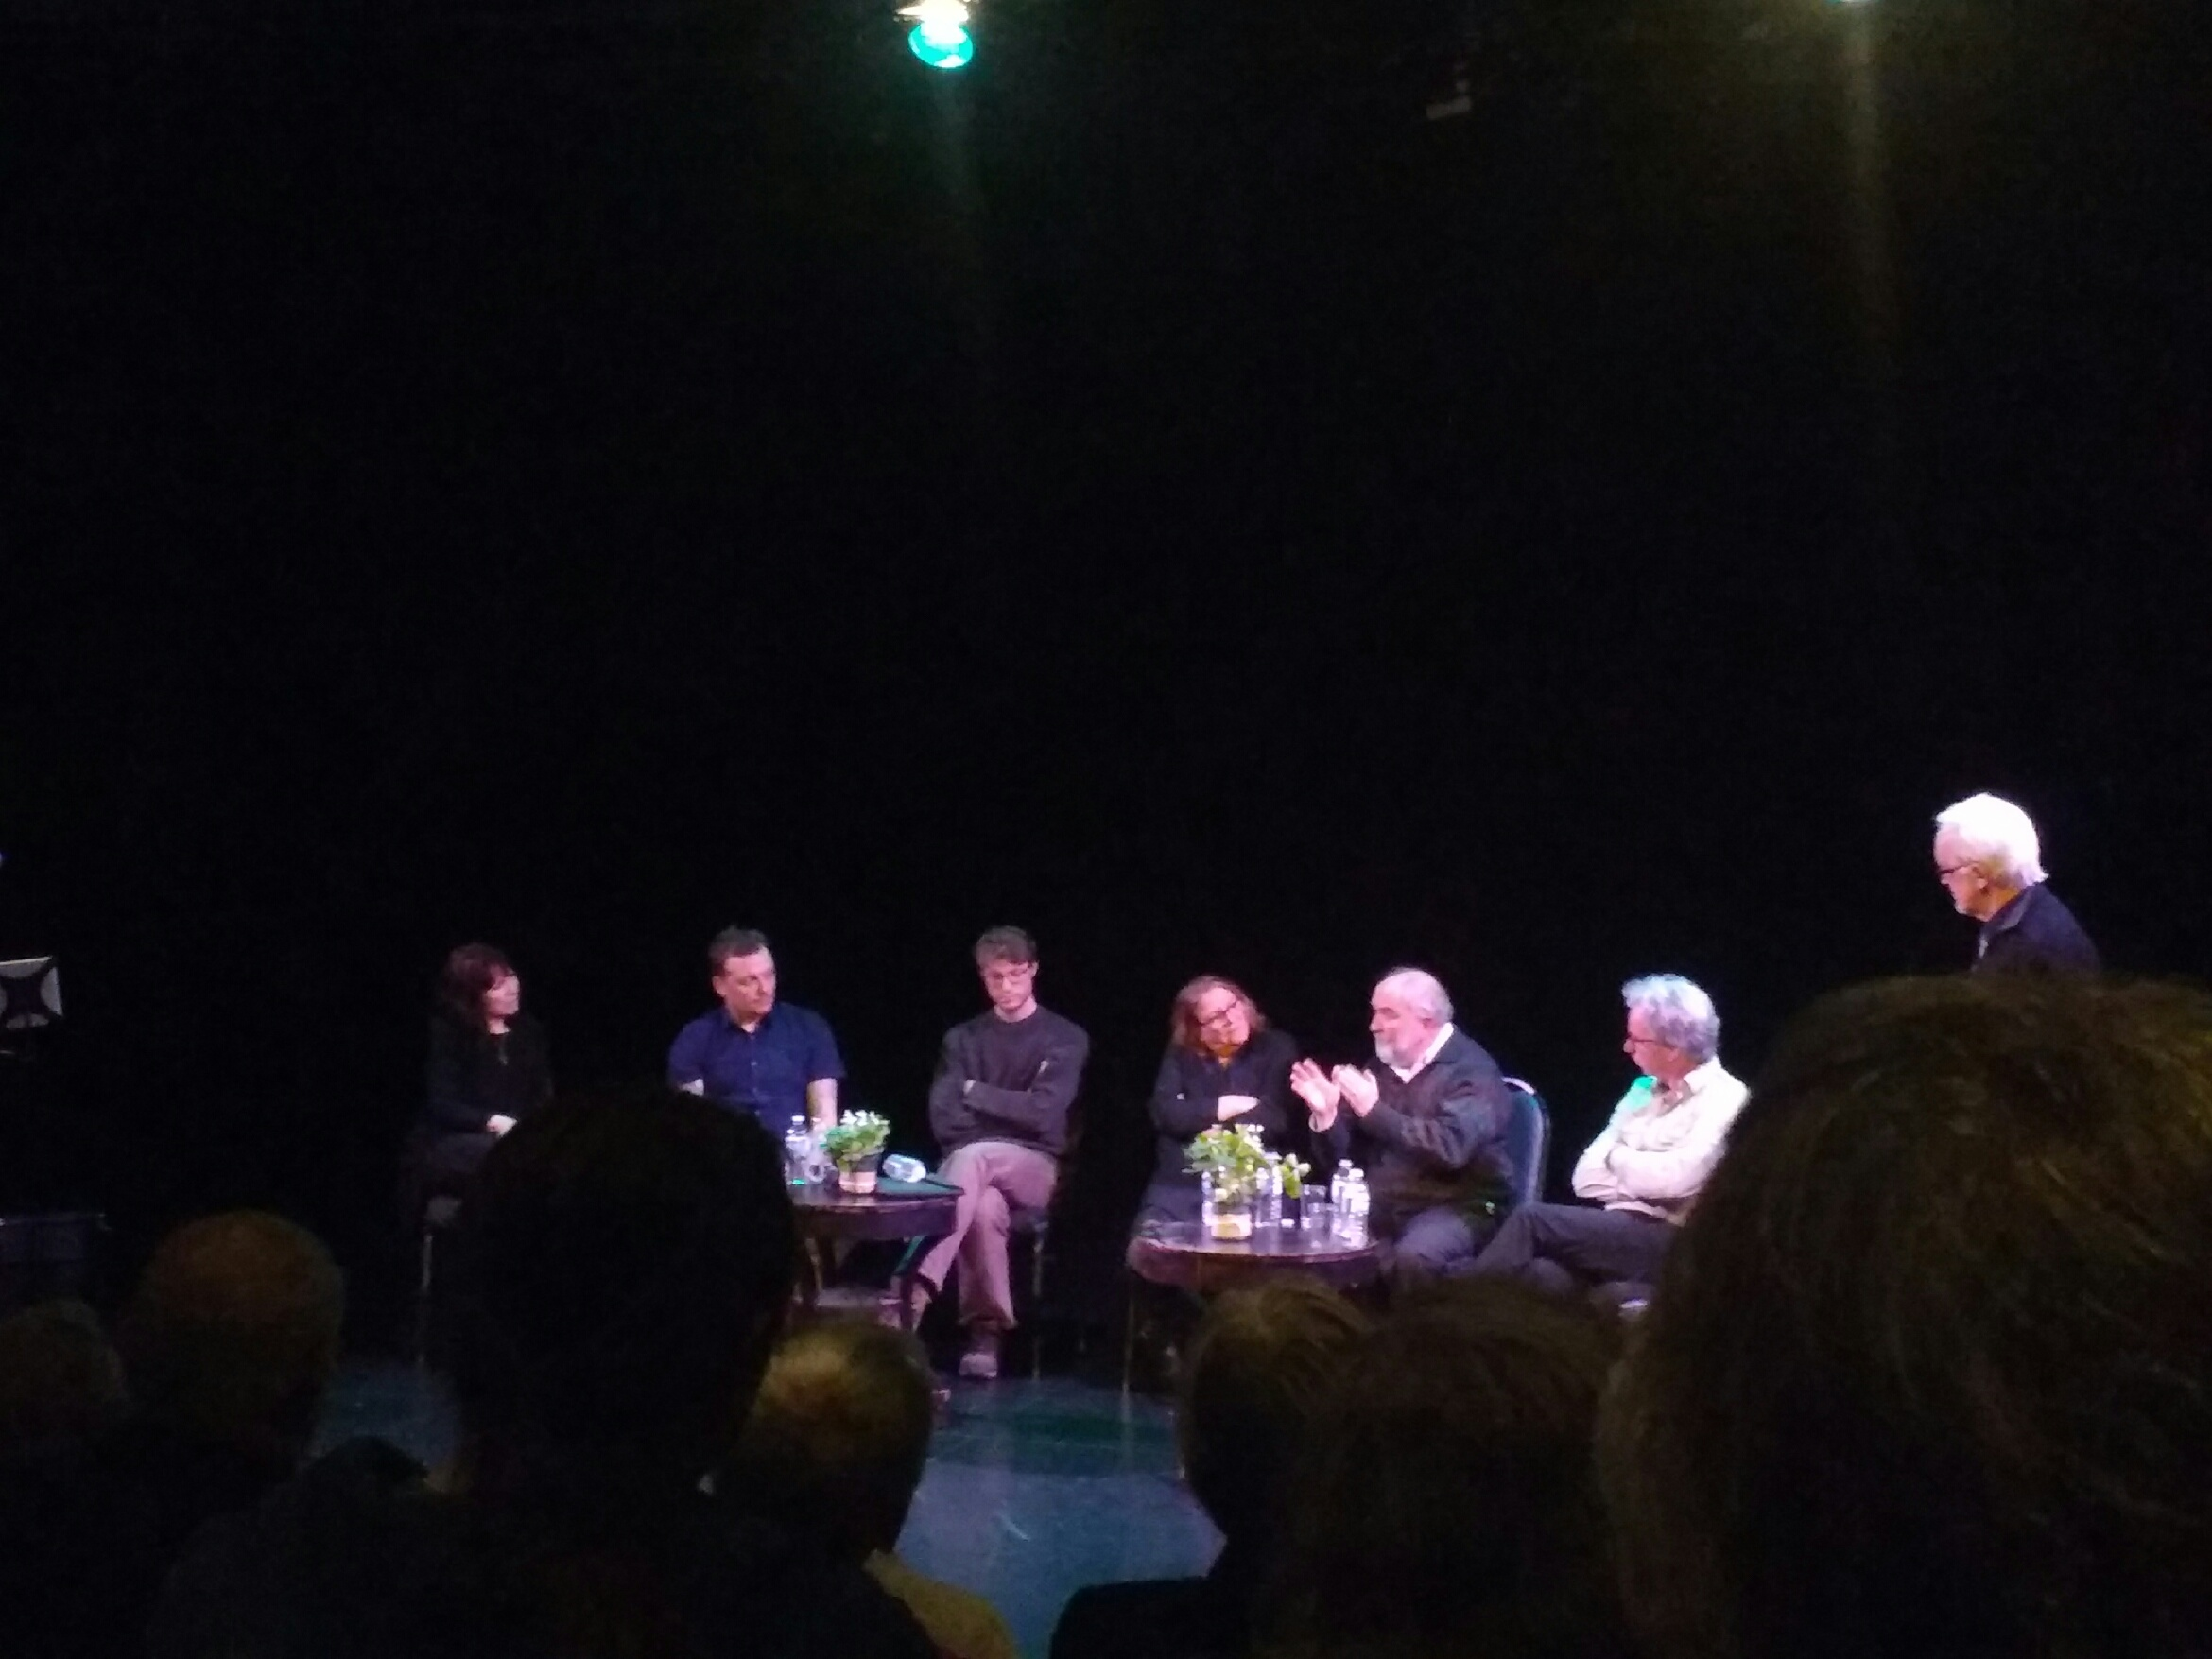 The Panel - from left to right: Karen MacLeod, Leigh Cooney, Ciarán Myers, Paddy Gillard-Bentley, Michael Higgins, Michael Kelly Cavan, and Host, Dr. Kieran Bonner.